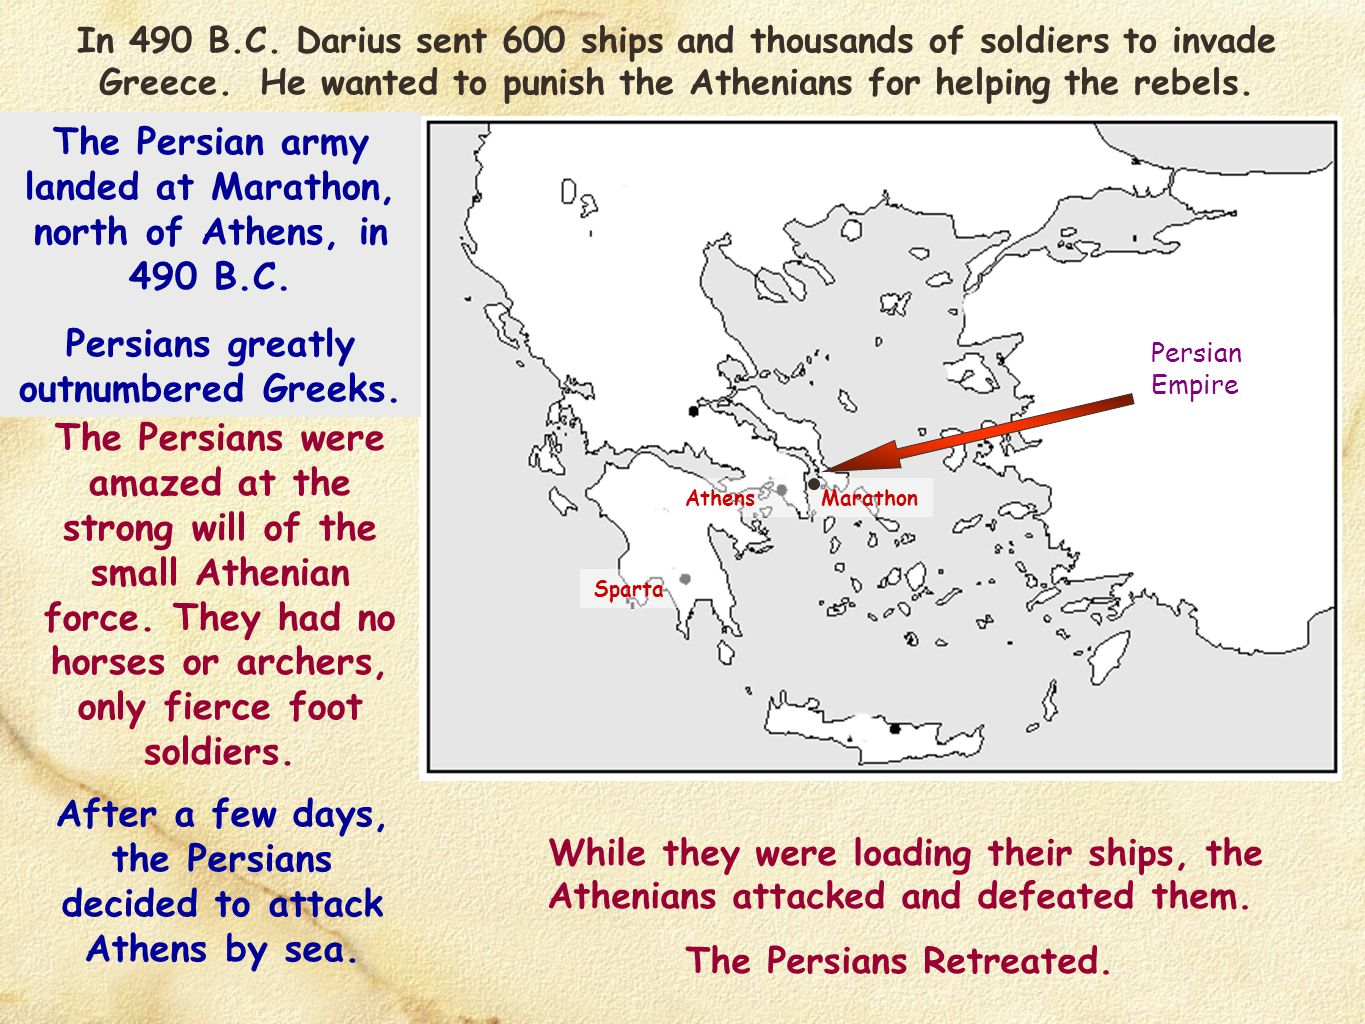 The Persian army landed at Marathon, north of Athens, in 490 B.C.